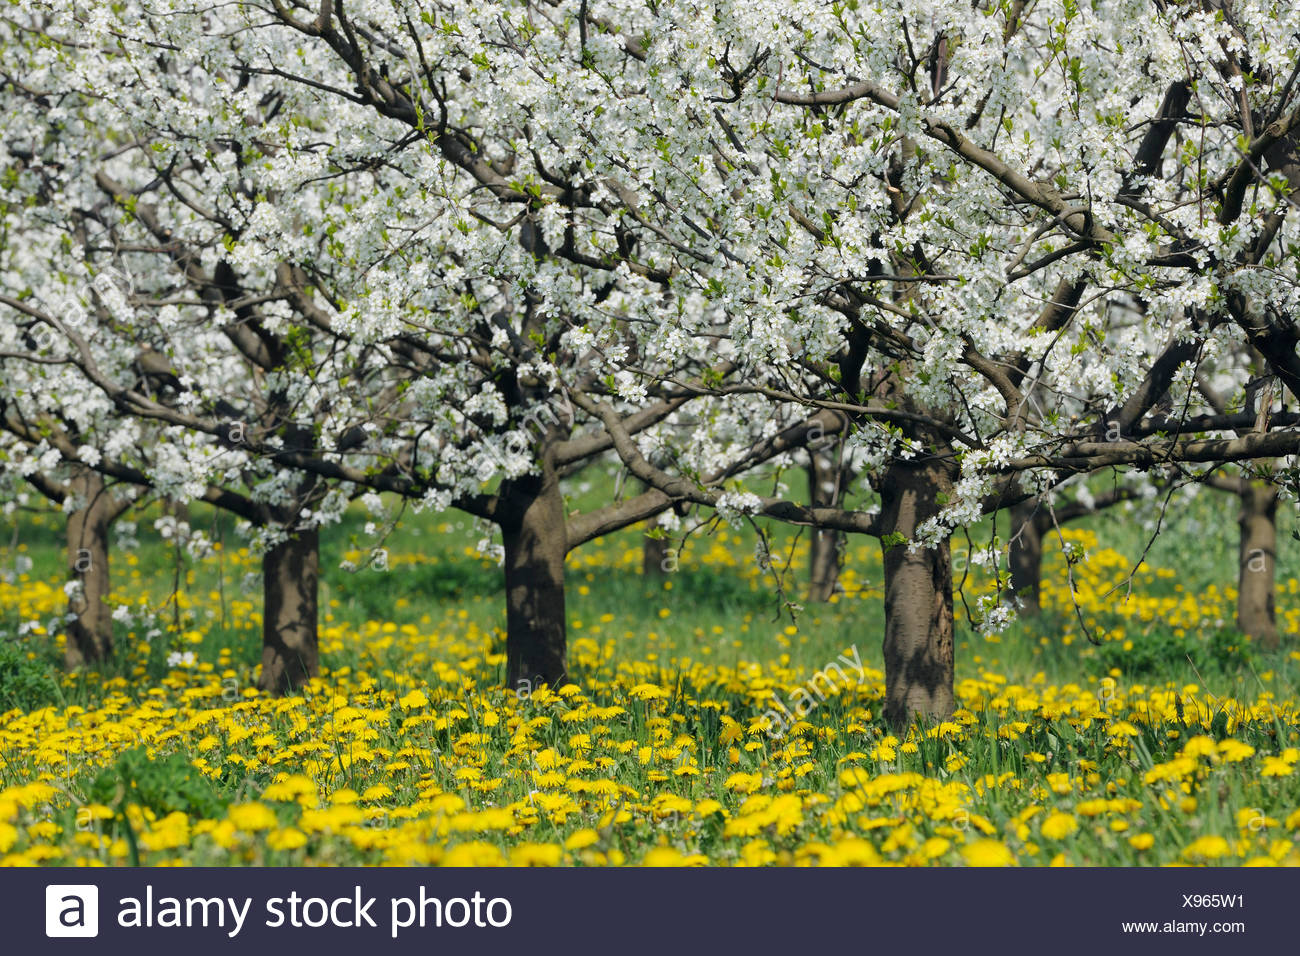 Germany, Bavaria, Row of cherry trees in orchid - Stock Image